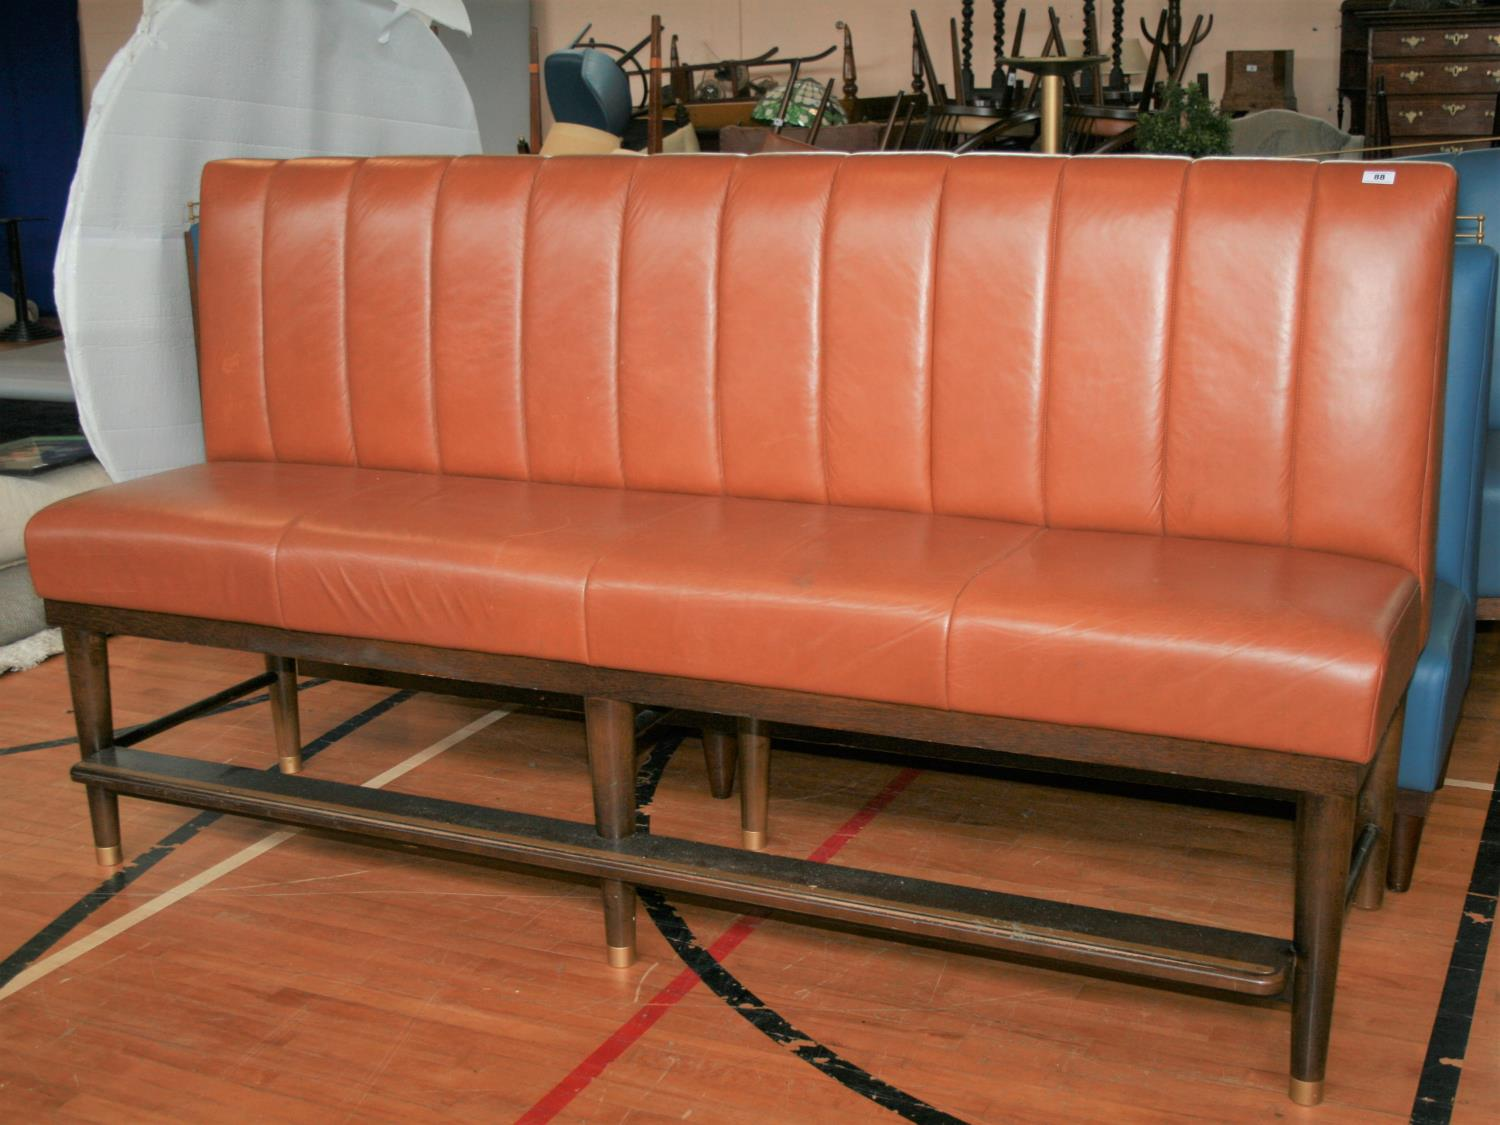 Fine quality fixed seating brown leather upholstered high seat with footrail and brass embellishment